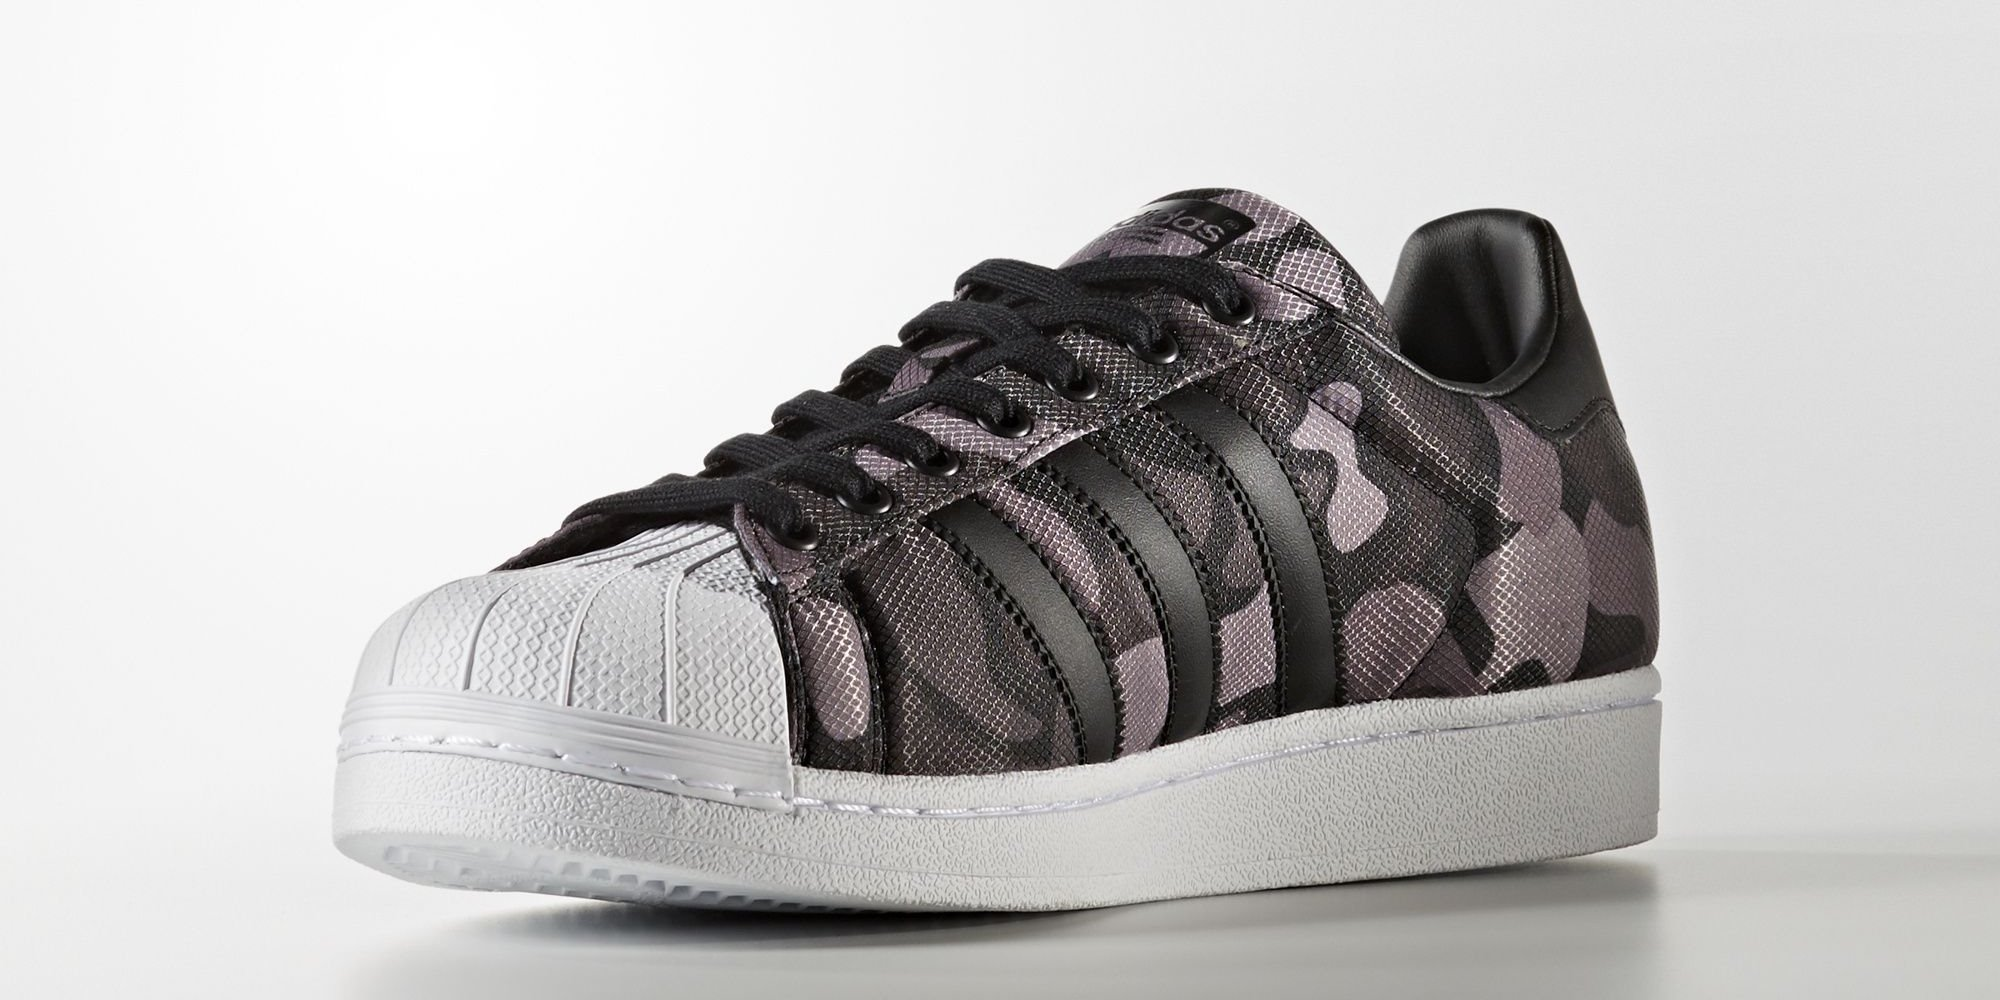 adidas superstar camouflage printed ripstop nylon. Black Bedroom Furniture Sets. Home Design Ideas